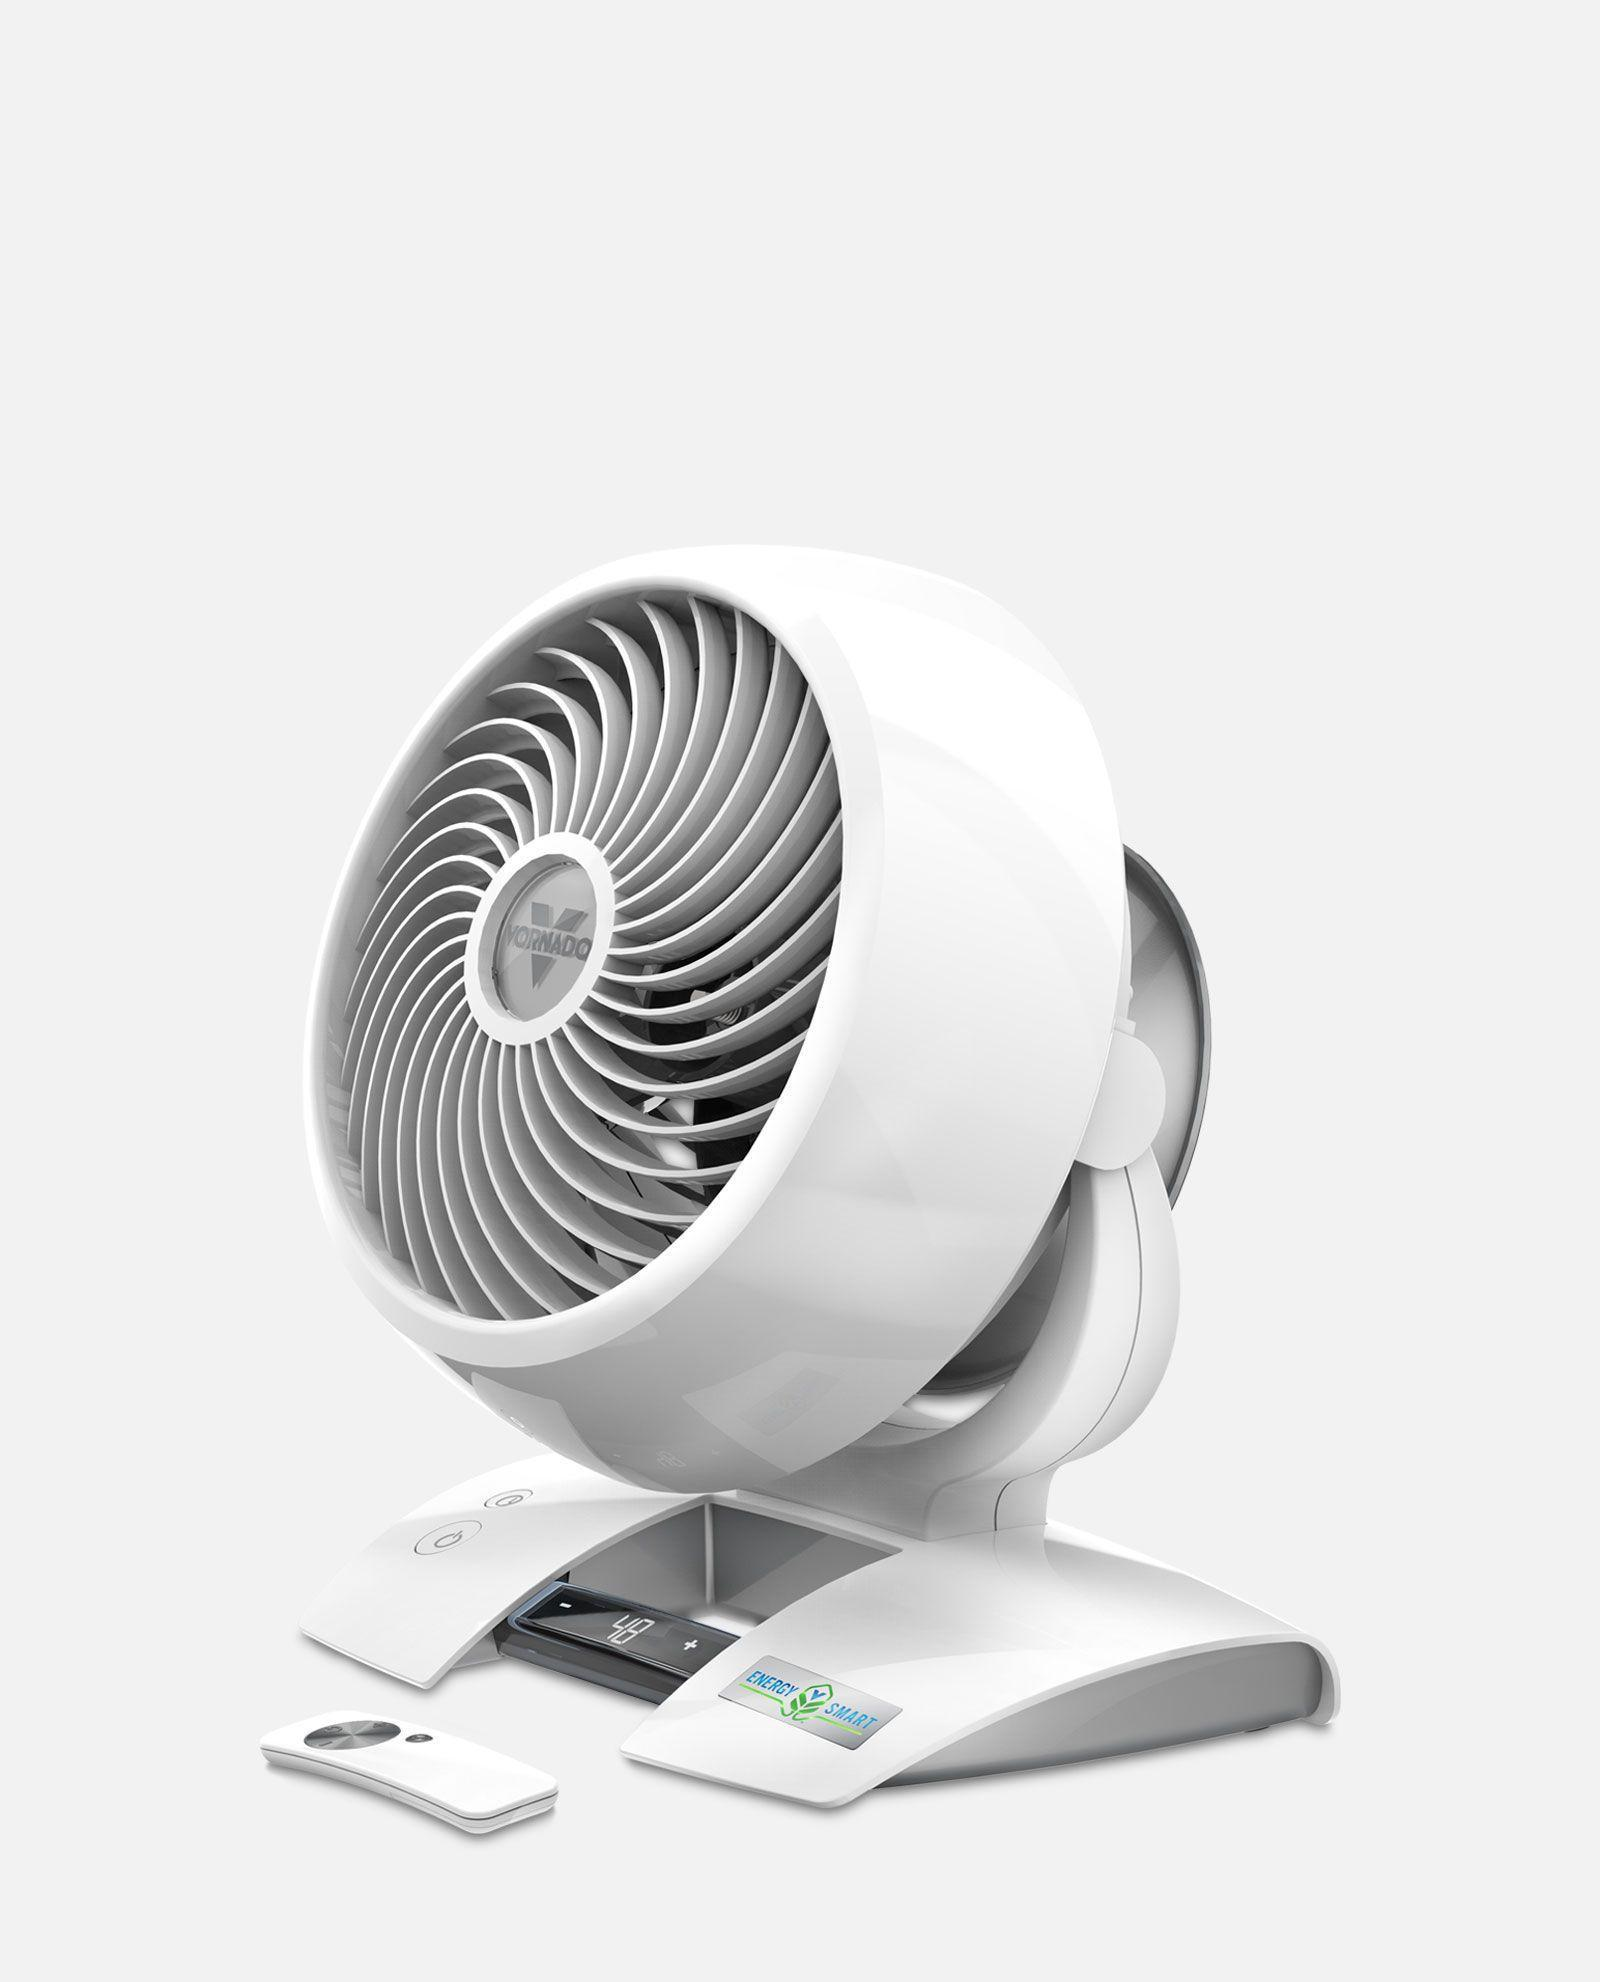 5303dc energy smart small air circulator vornado for Air circulation fans home